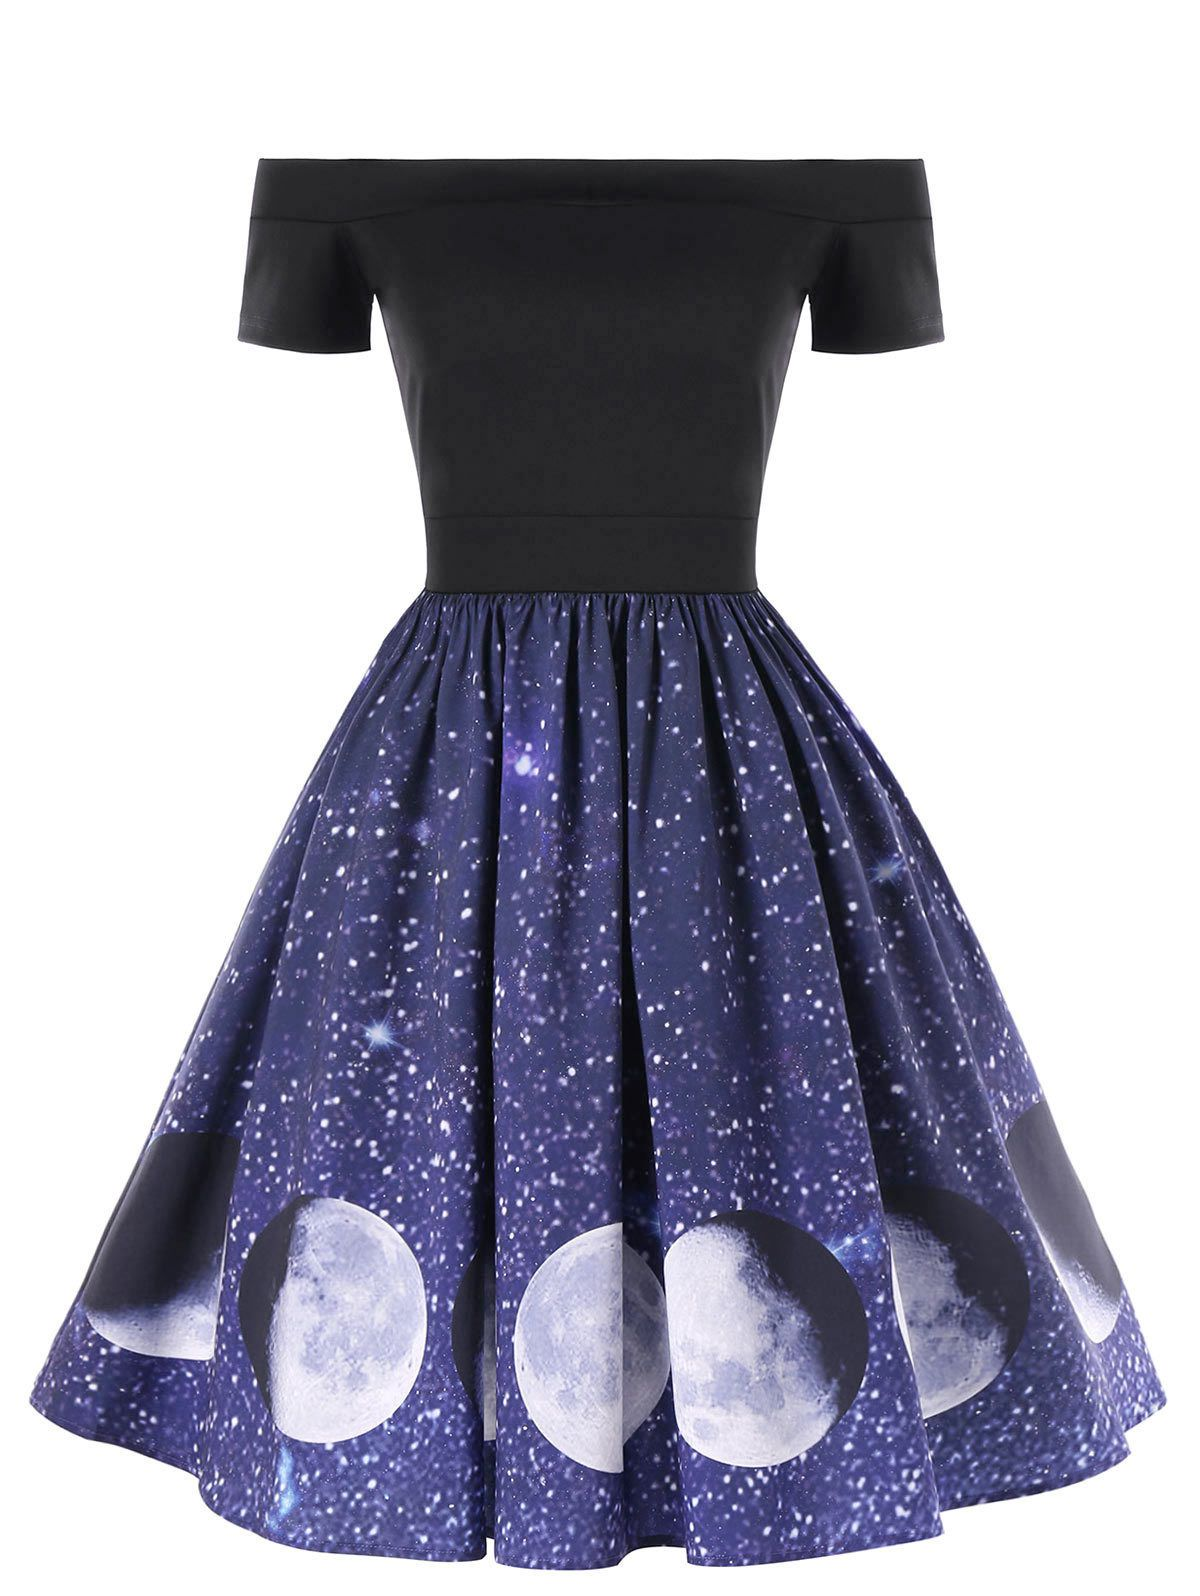 76031bf9275  12.95 - Women Evening Party Dress Off The Shoulder Galaxy Moon Print Swing  A-Line Dress  ebay  Fashion